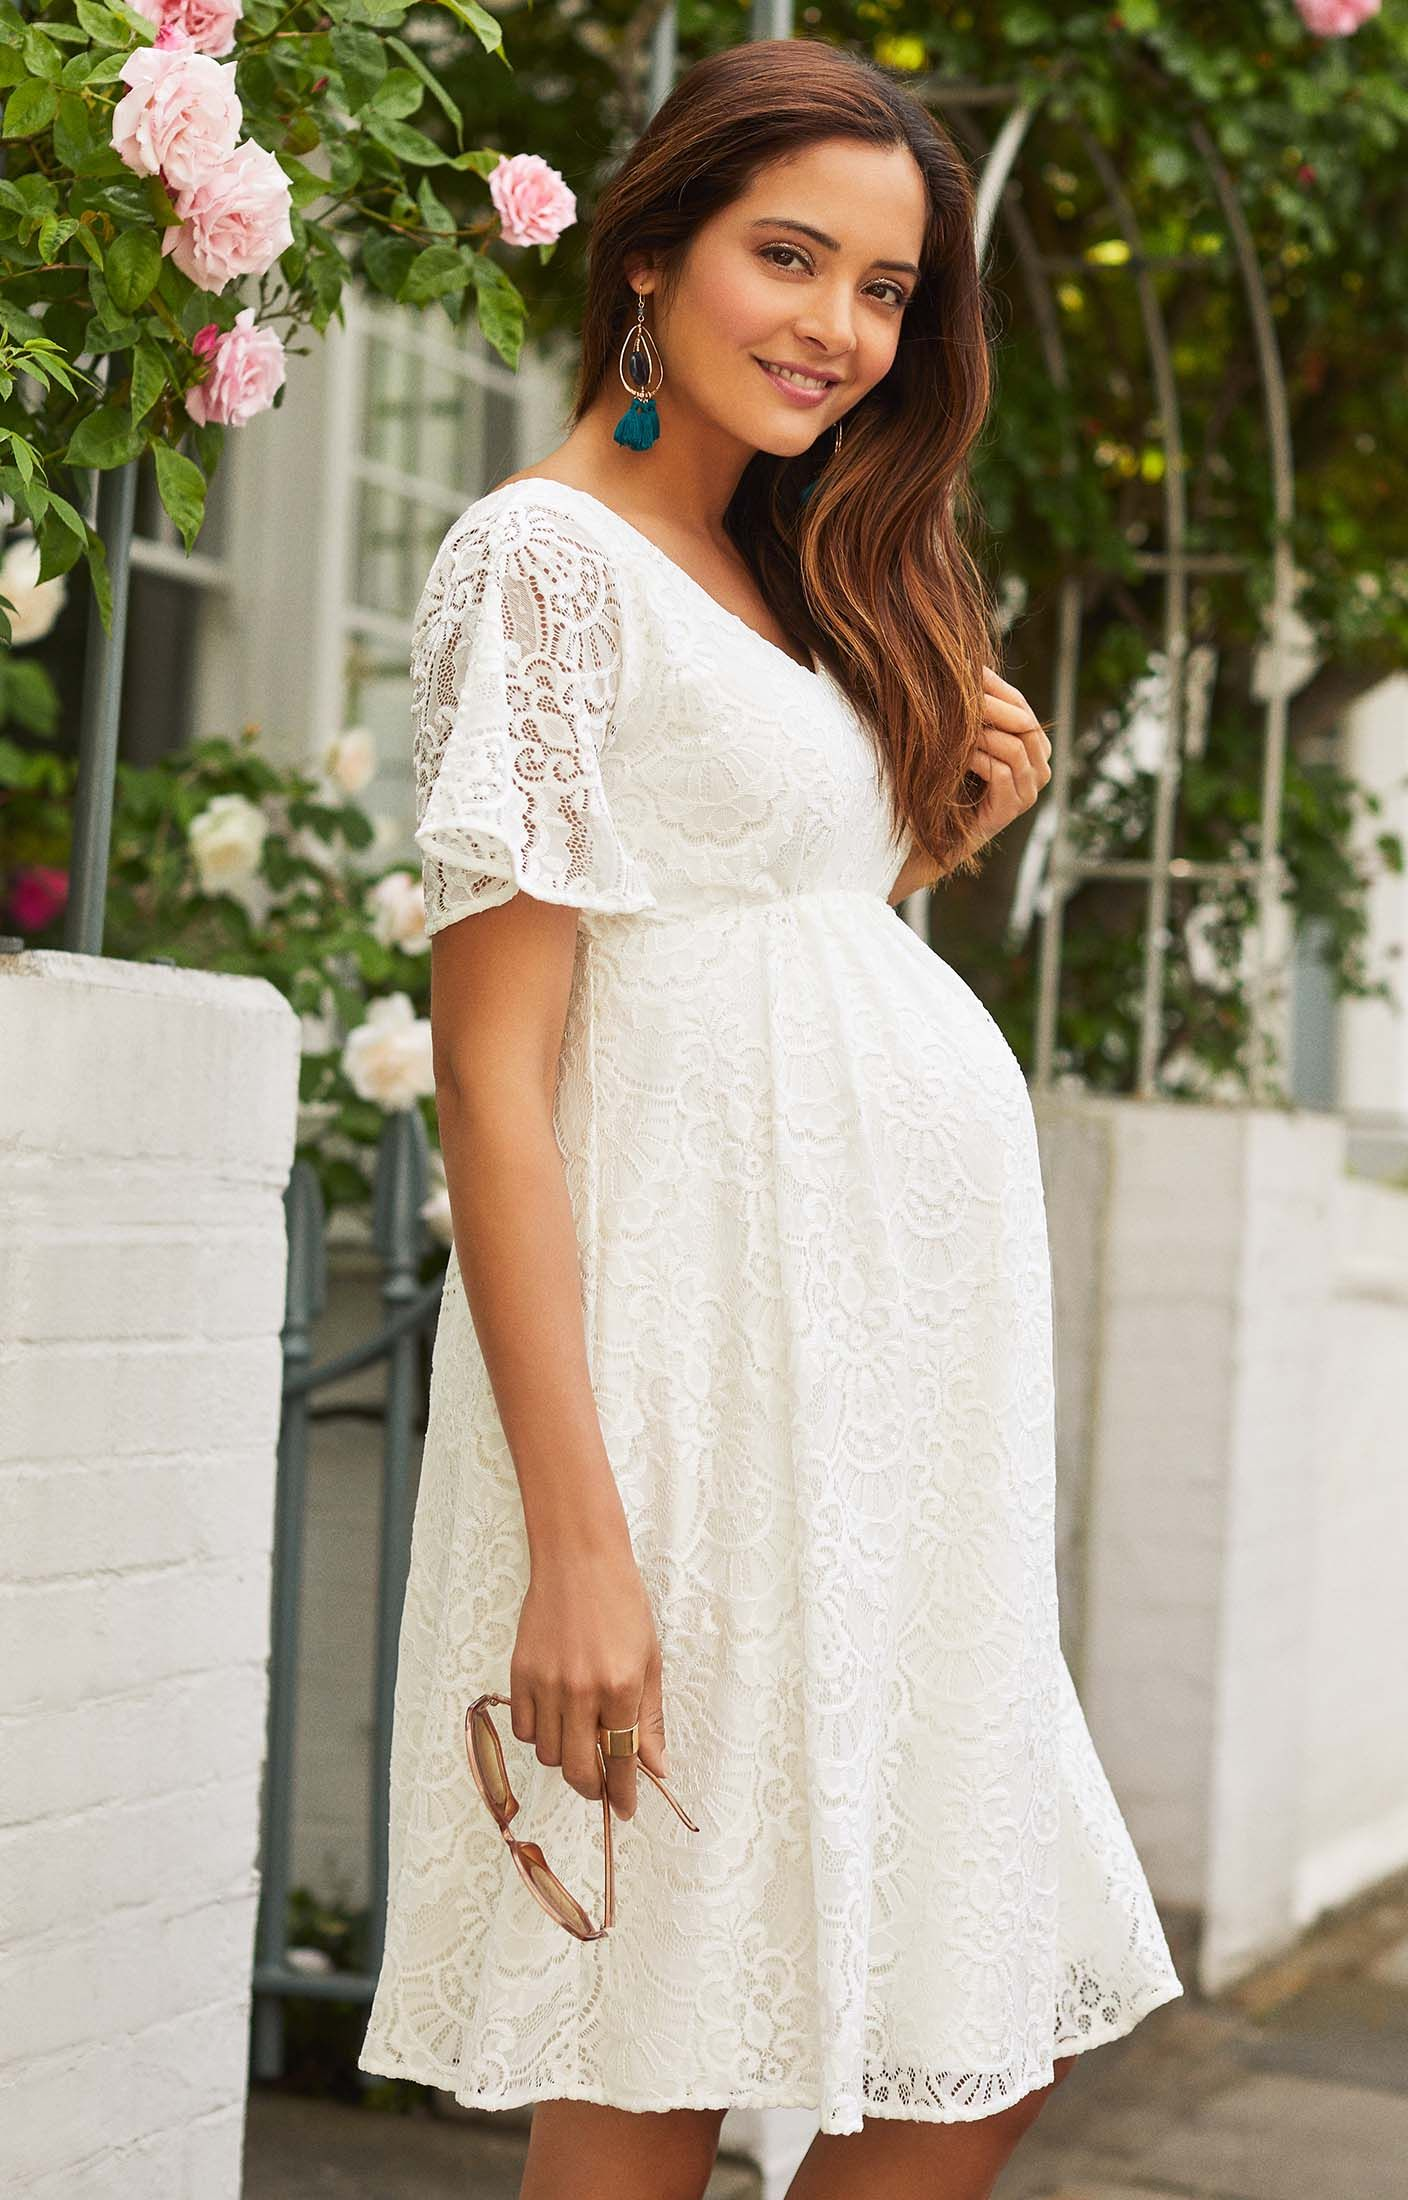 7415161bfbf89 Maternity Dress | Baby Shower Dress | Maternity Bridal | White Maternity  Dress | Boho Maternity Dress | Our boho Kimono Edith Dress in floral ivory  lace is ...